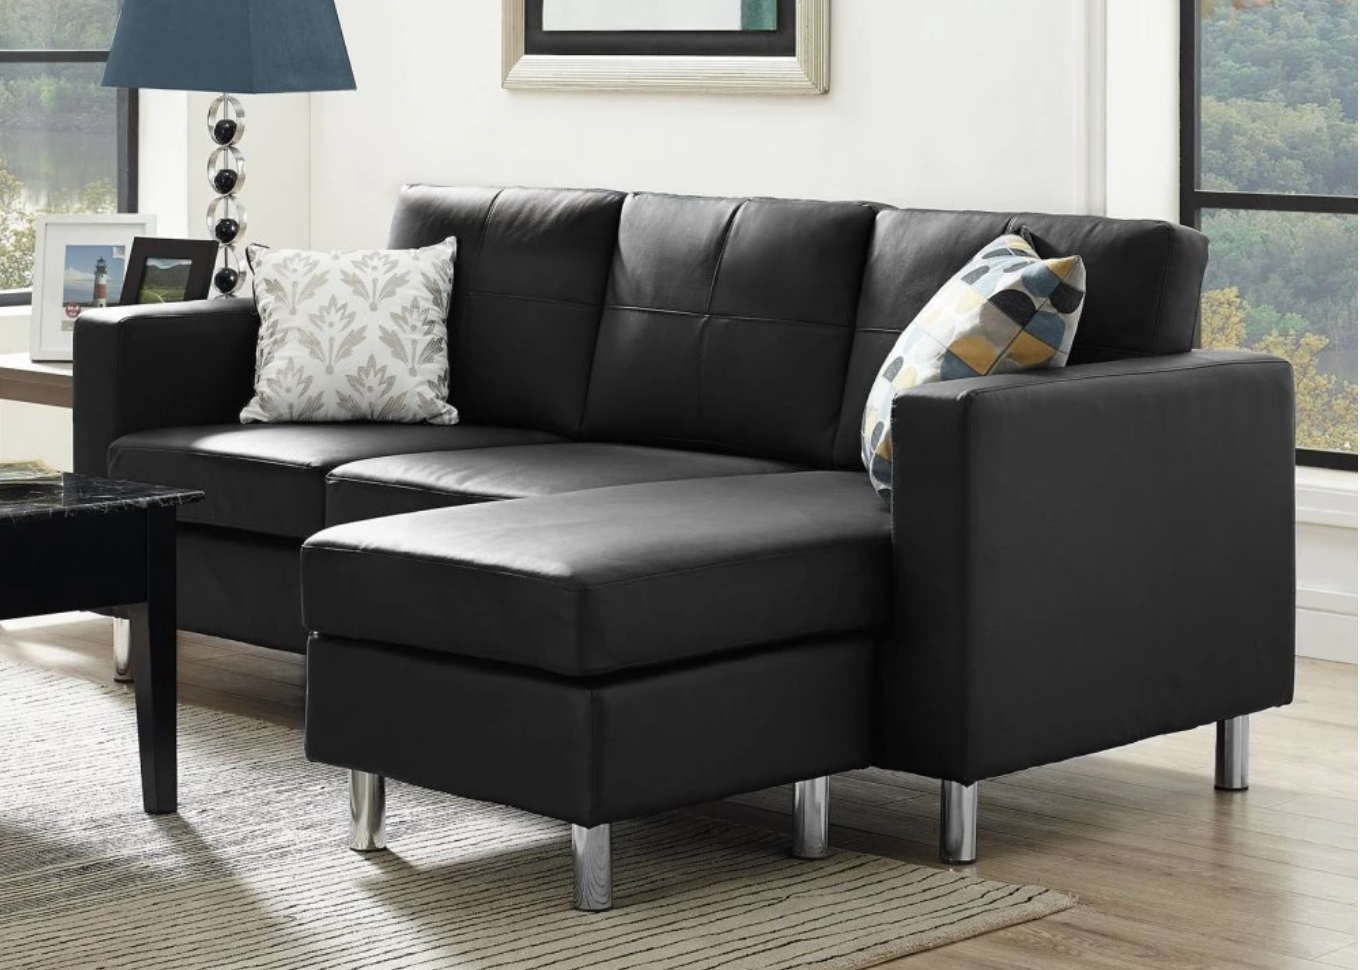 Most Current 75 Modern Sectional Sofas For Small Spaces (2018) Regarding Canada Sectional Sofas For Small Spaces (View 8 of 15)